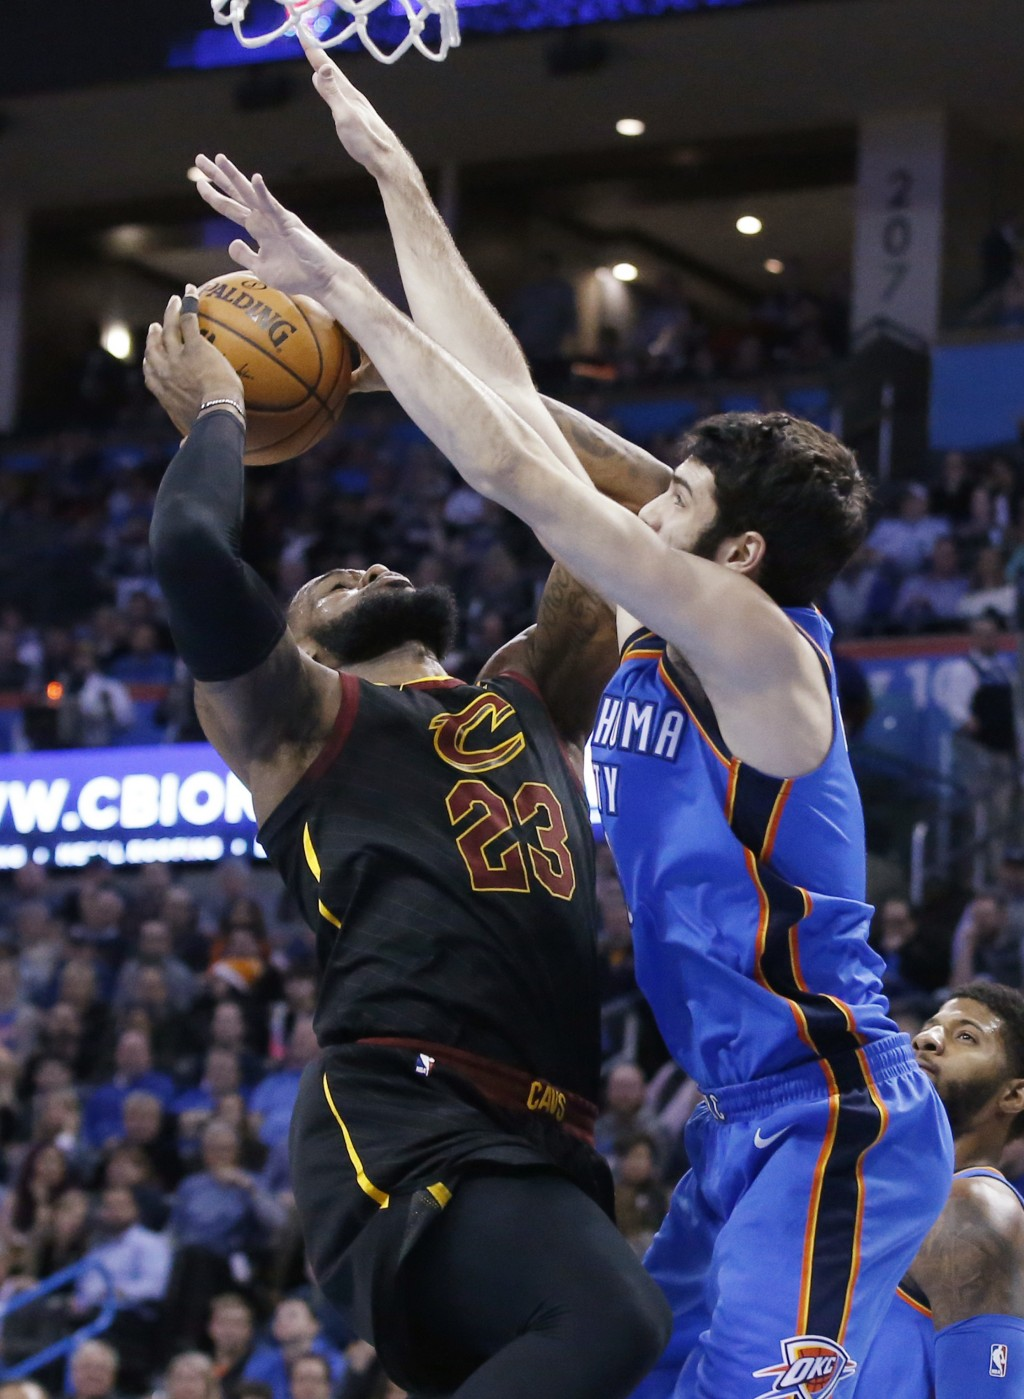 Cleveland Cavaliers forward LeBron James, left, is fouled by Oklahoma City Thunder guard Alex Abrines as he shoots during the first half of an NBA bas